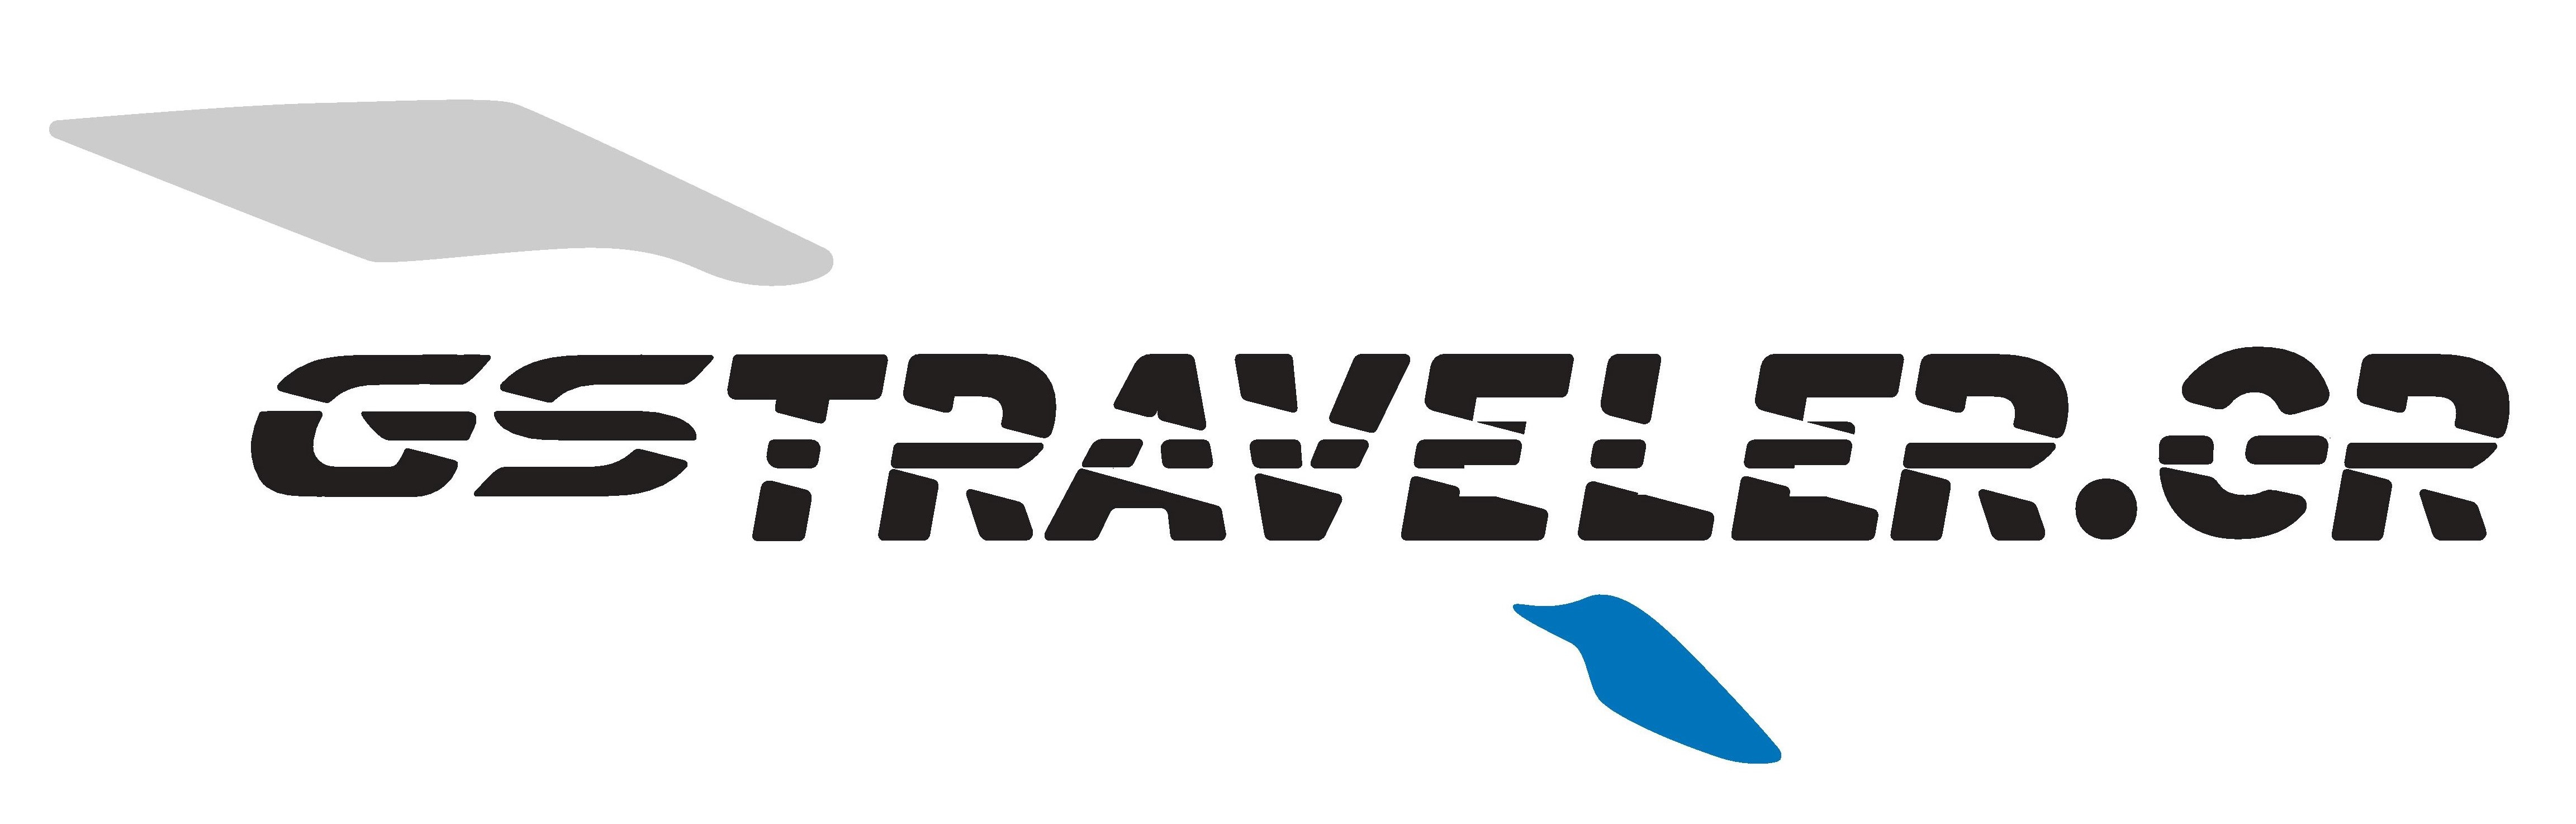 GSTRAVELER MOTORCYCLE RENTAL SERVICES